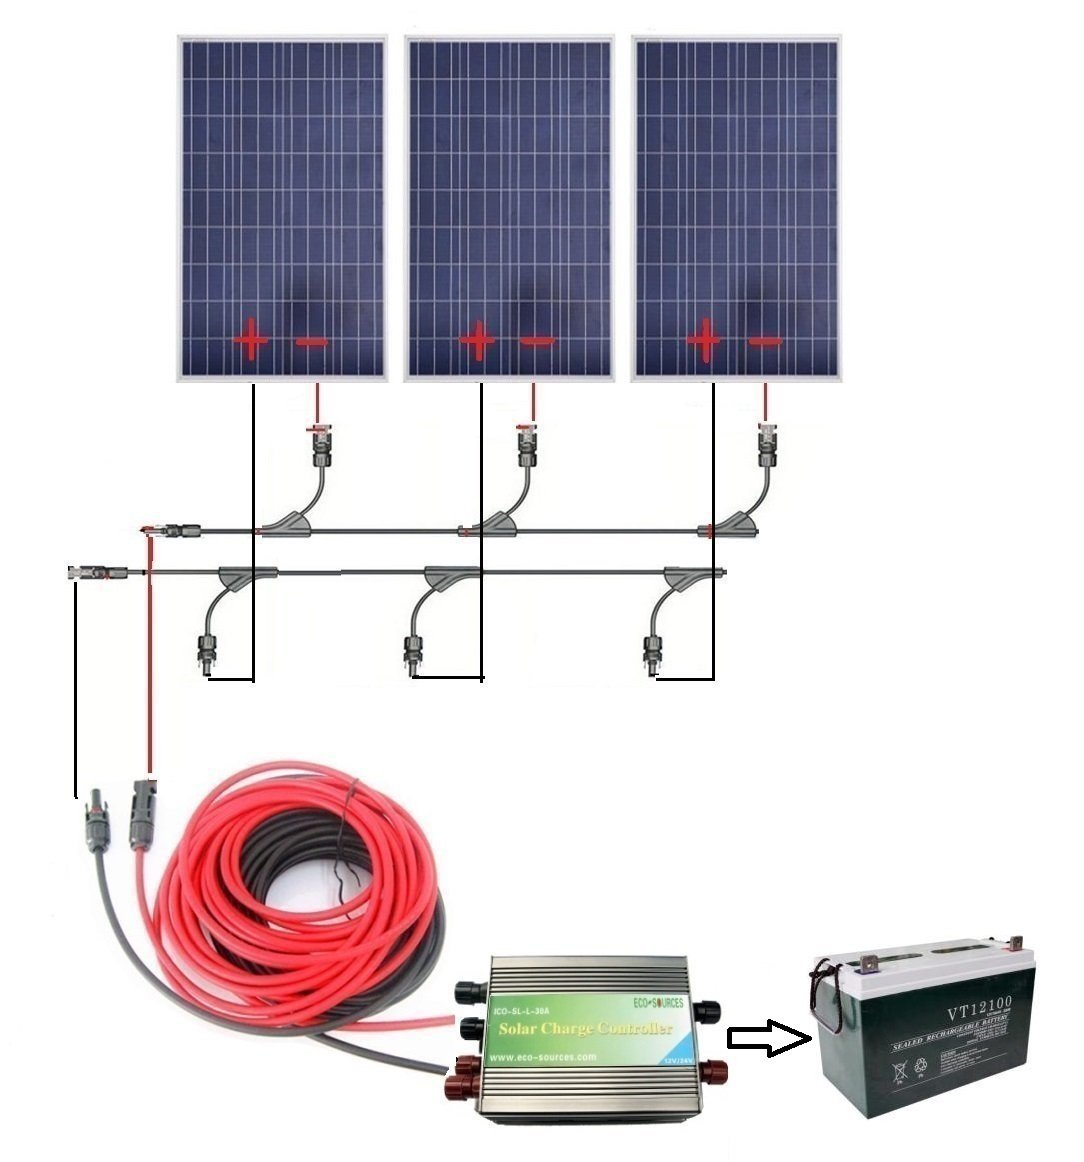 Cheap 100ah Battery Case 12v Find Deals On Solar Charger Circuit Can Charge Lead Acid Or Sla Get Quotations Eco Worthy 300w Complete Kit For 3pcs 100w Panels